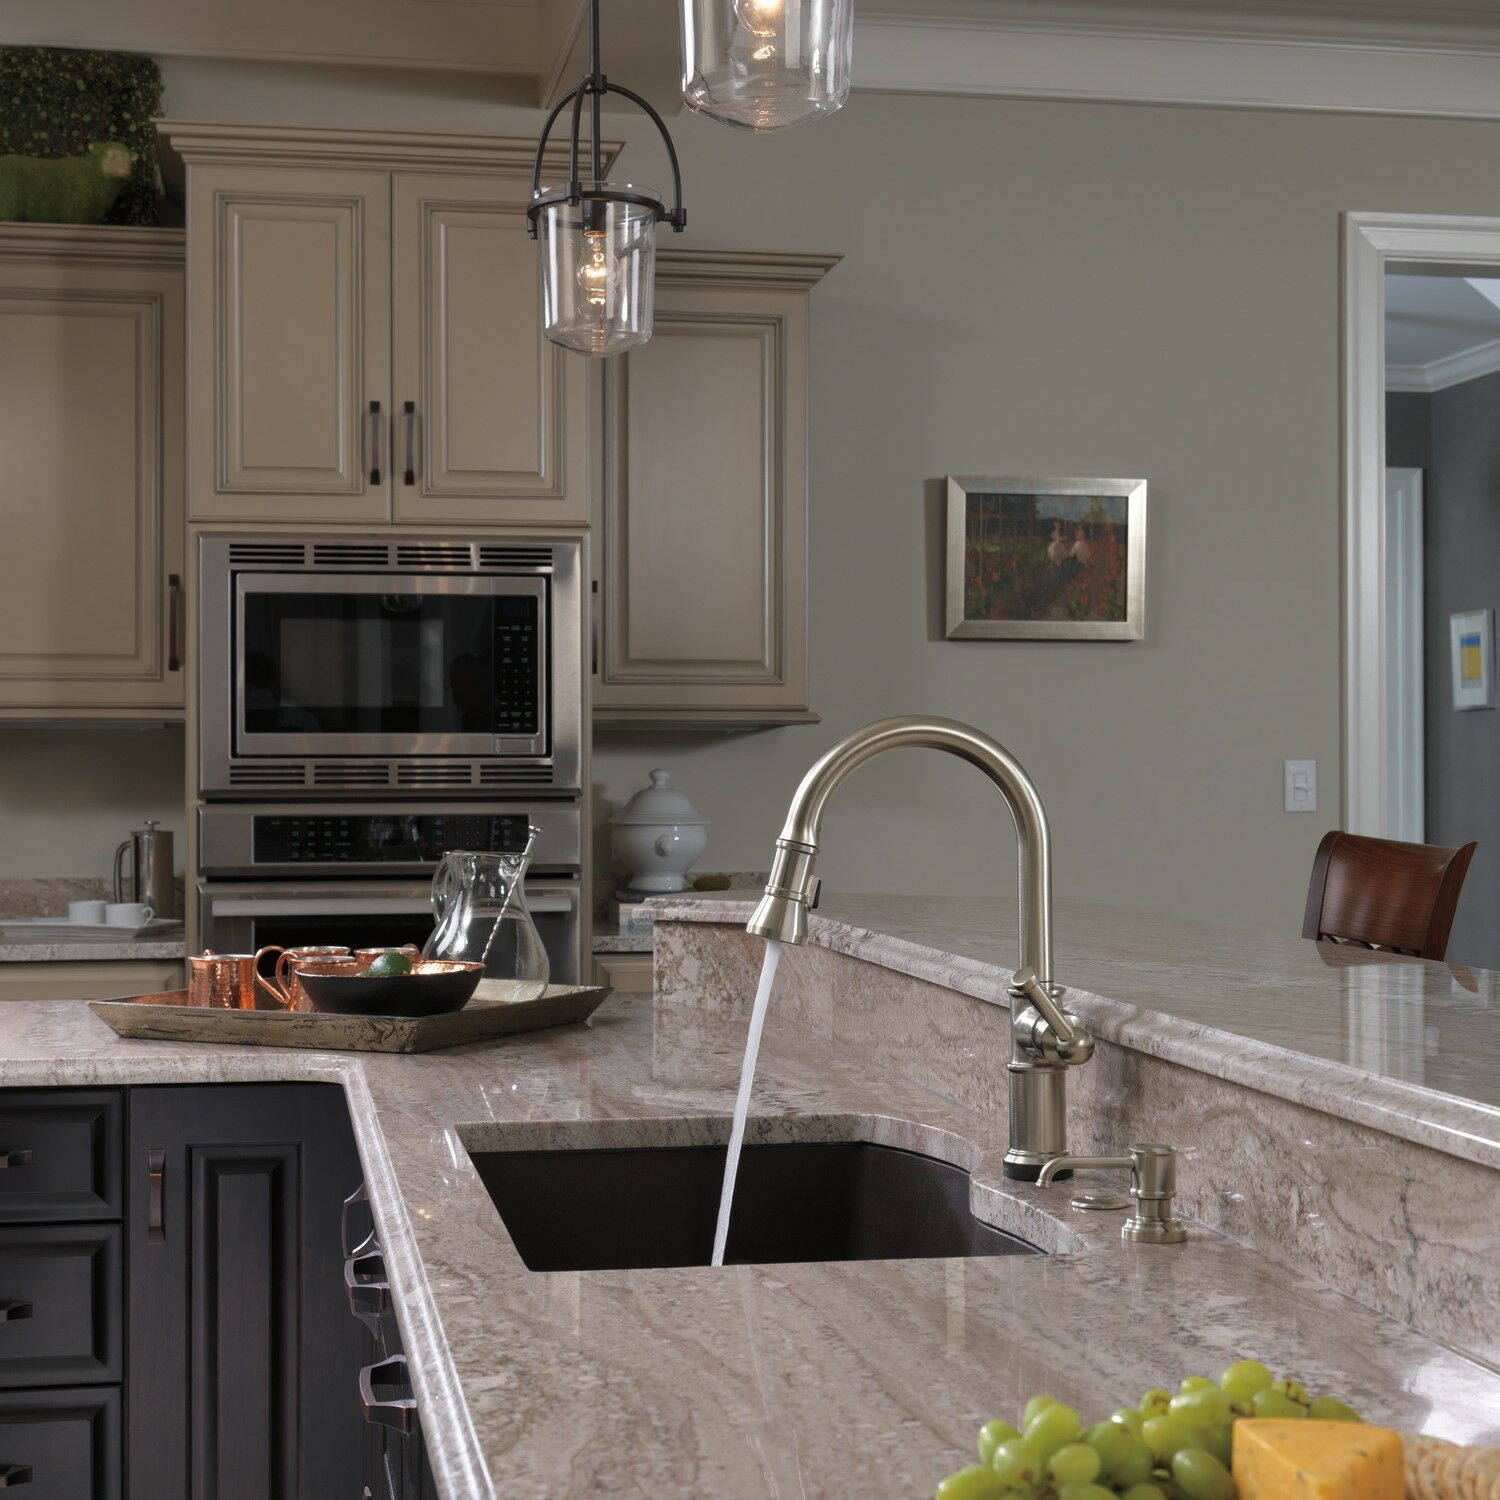 artesso single handle pull down kitchen faucet with smarttouch technology